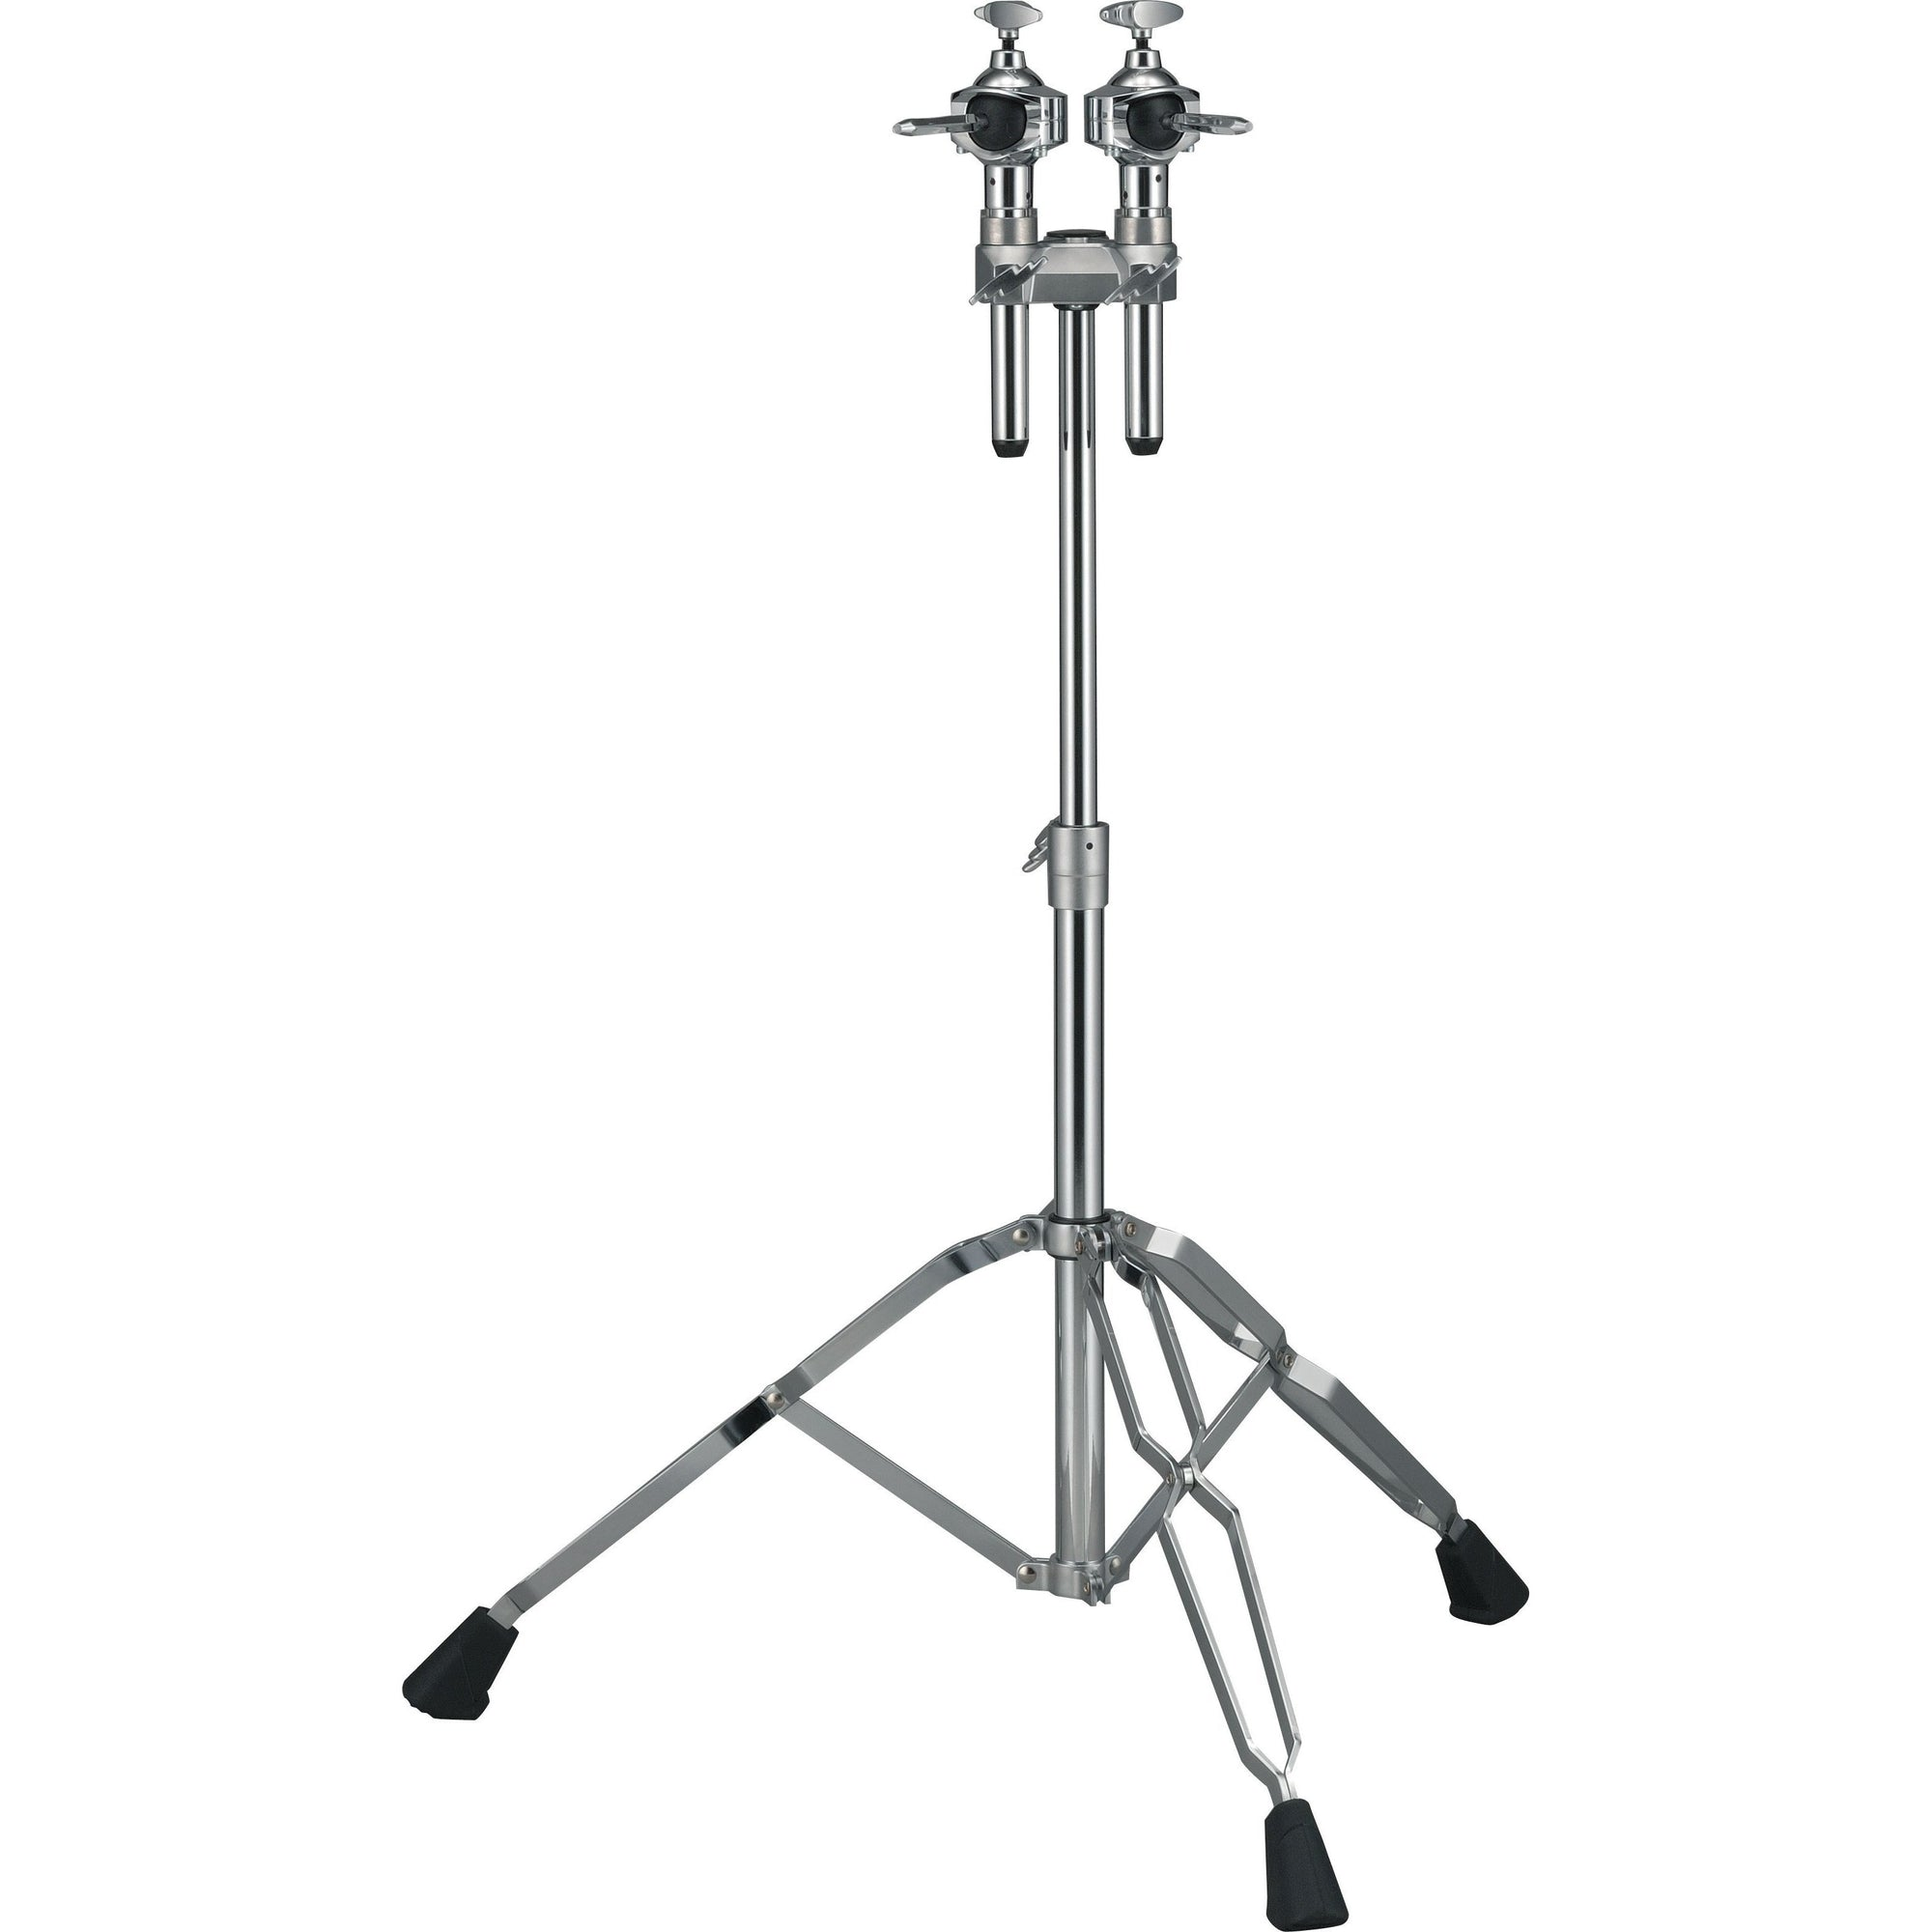 Yamaha - WS865A - Tom Toms Stand-Percussion-Yamaha-Music Elements